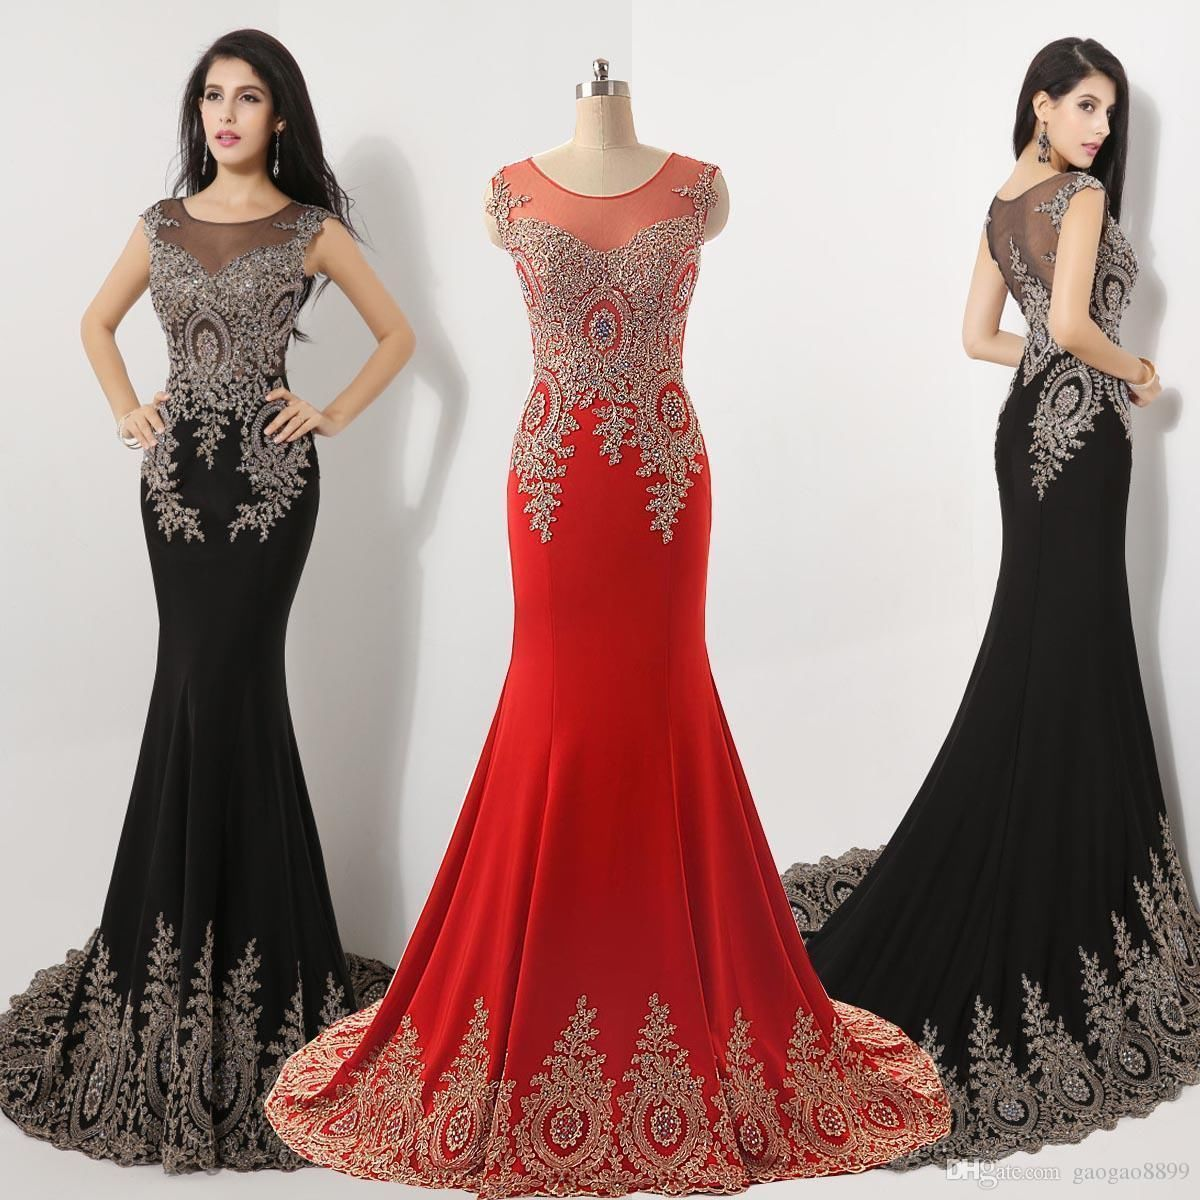 Black dress gold lace - Mermaid Evening Dress Long 2016 Gold Lace Appliques See Through Dubai Arabic Evening Gowns Party Formal